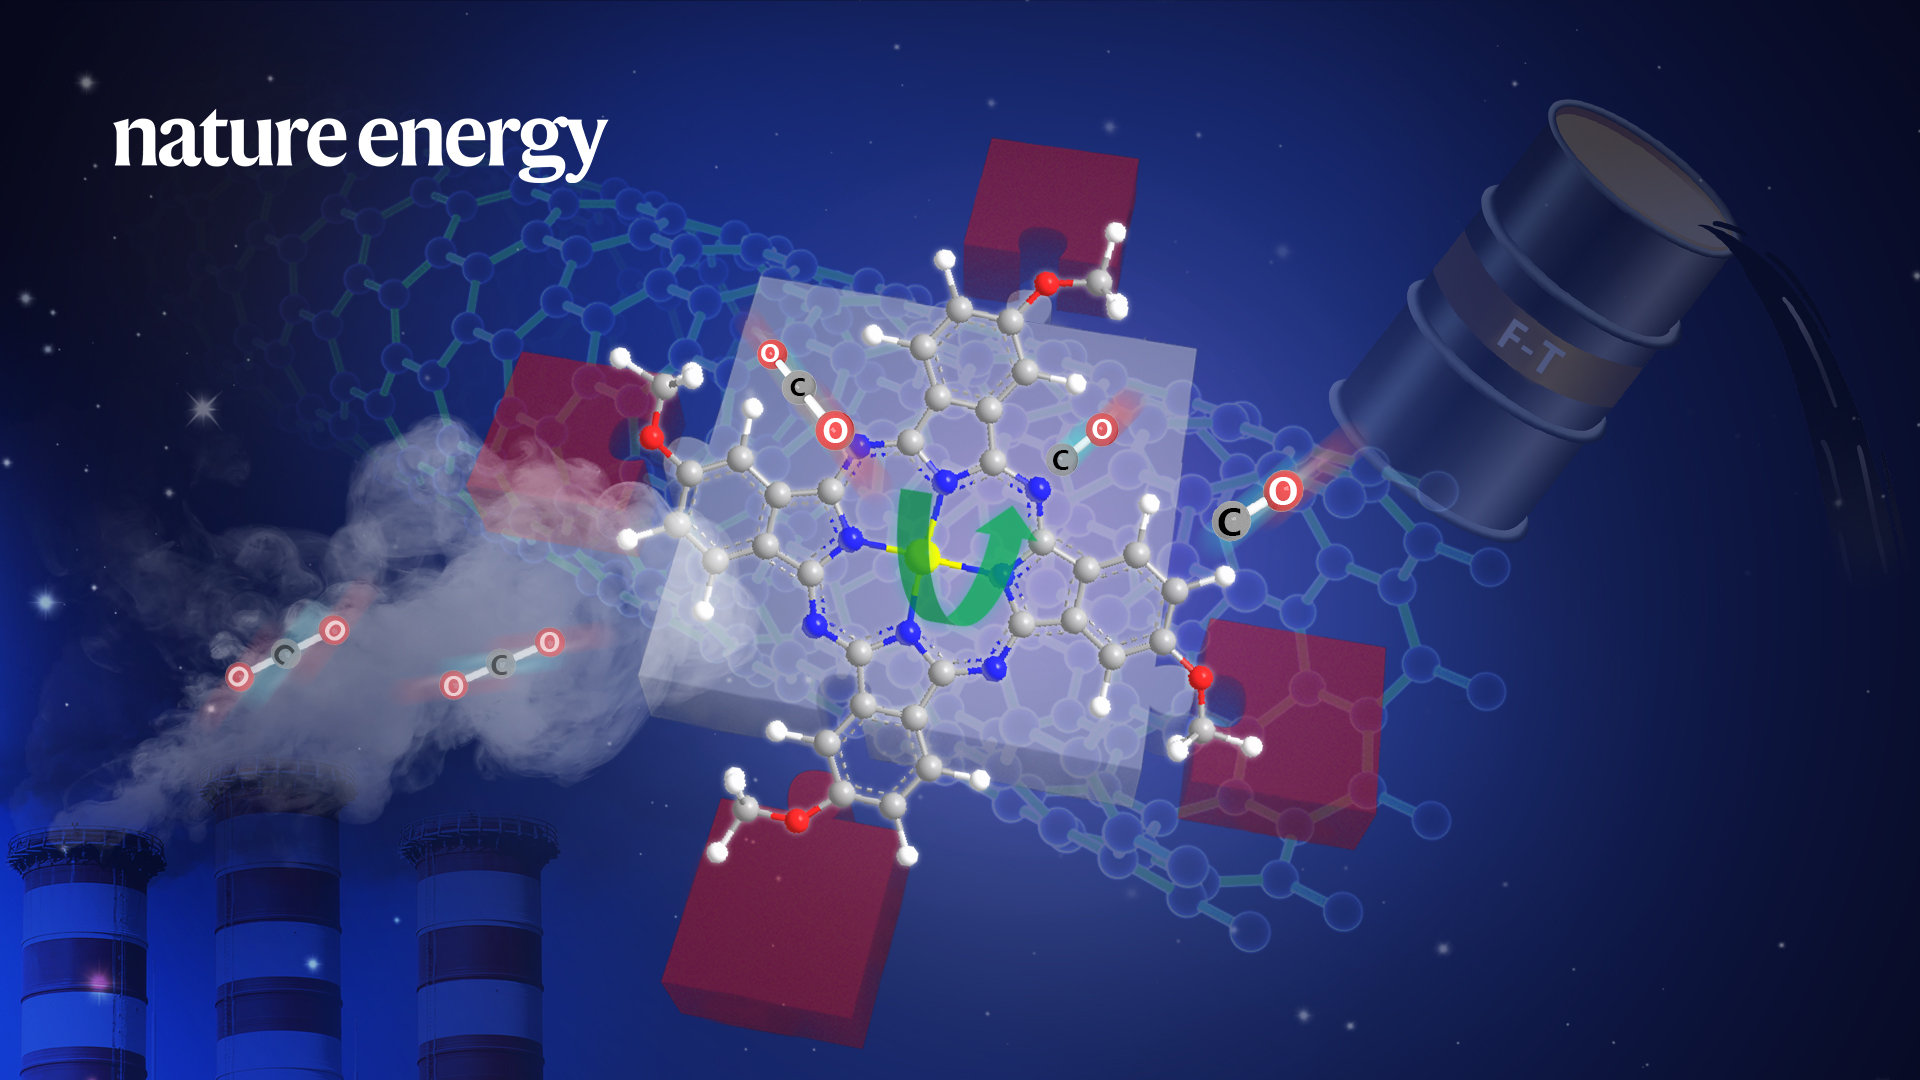 Molecular engineering of electrocatalysts could lead to a cleaner future